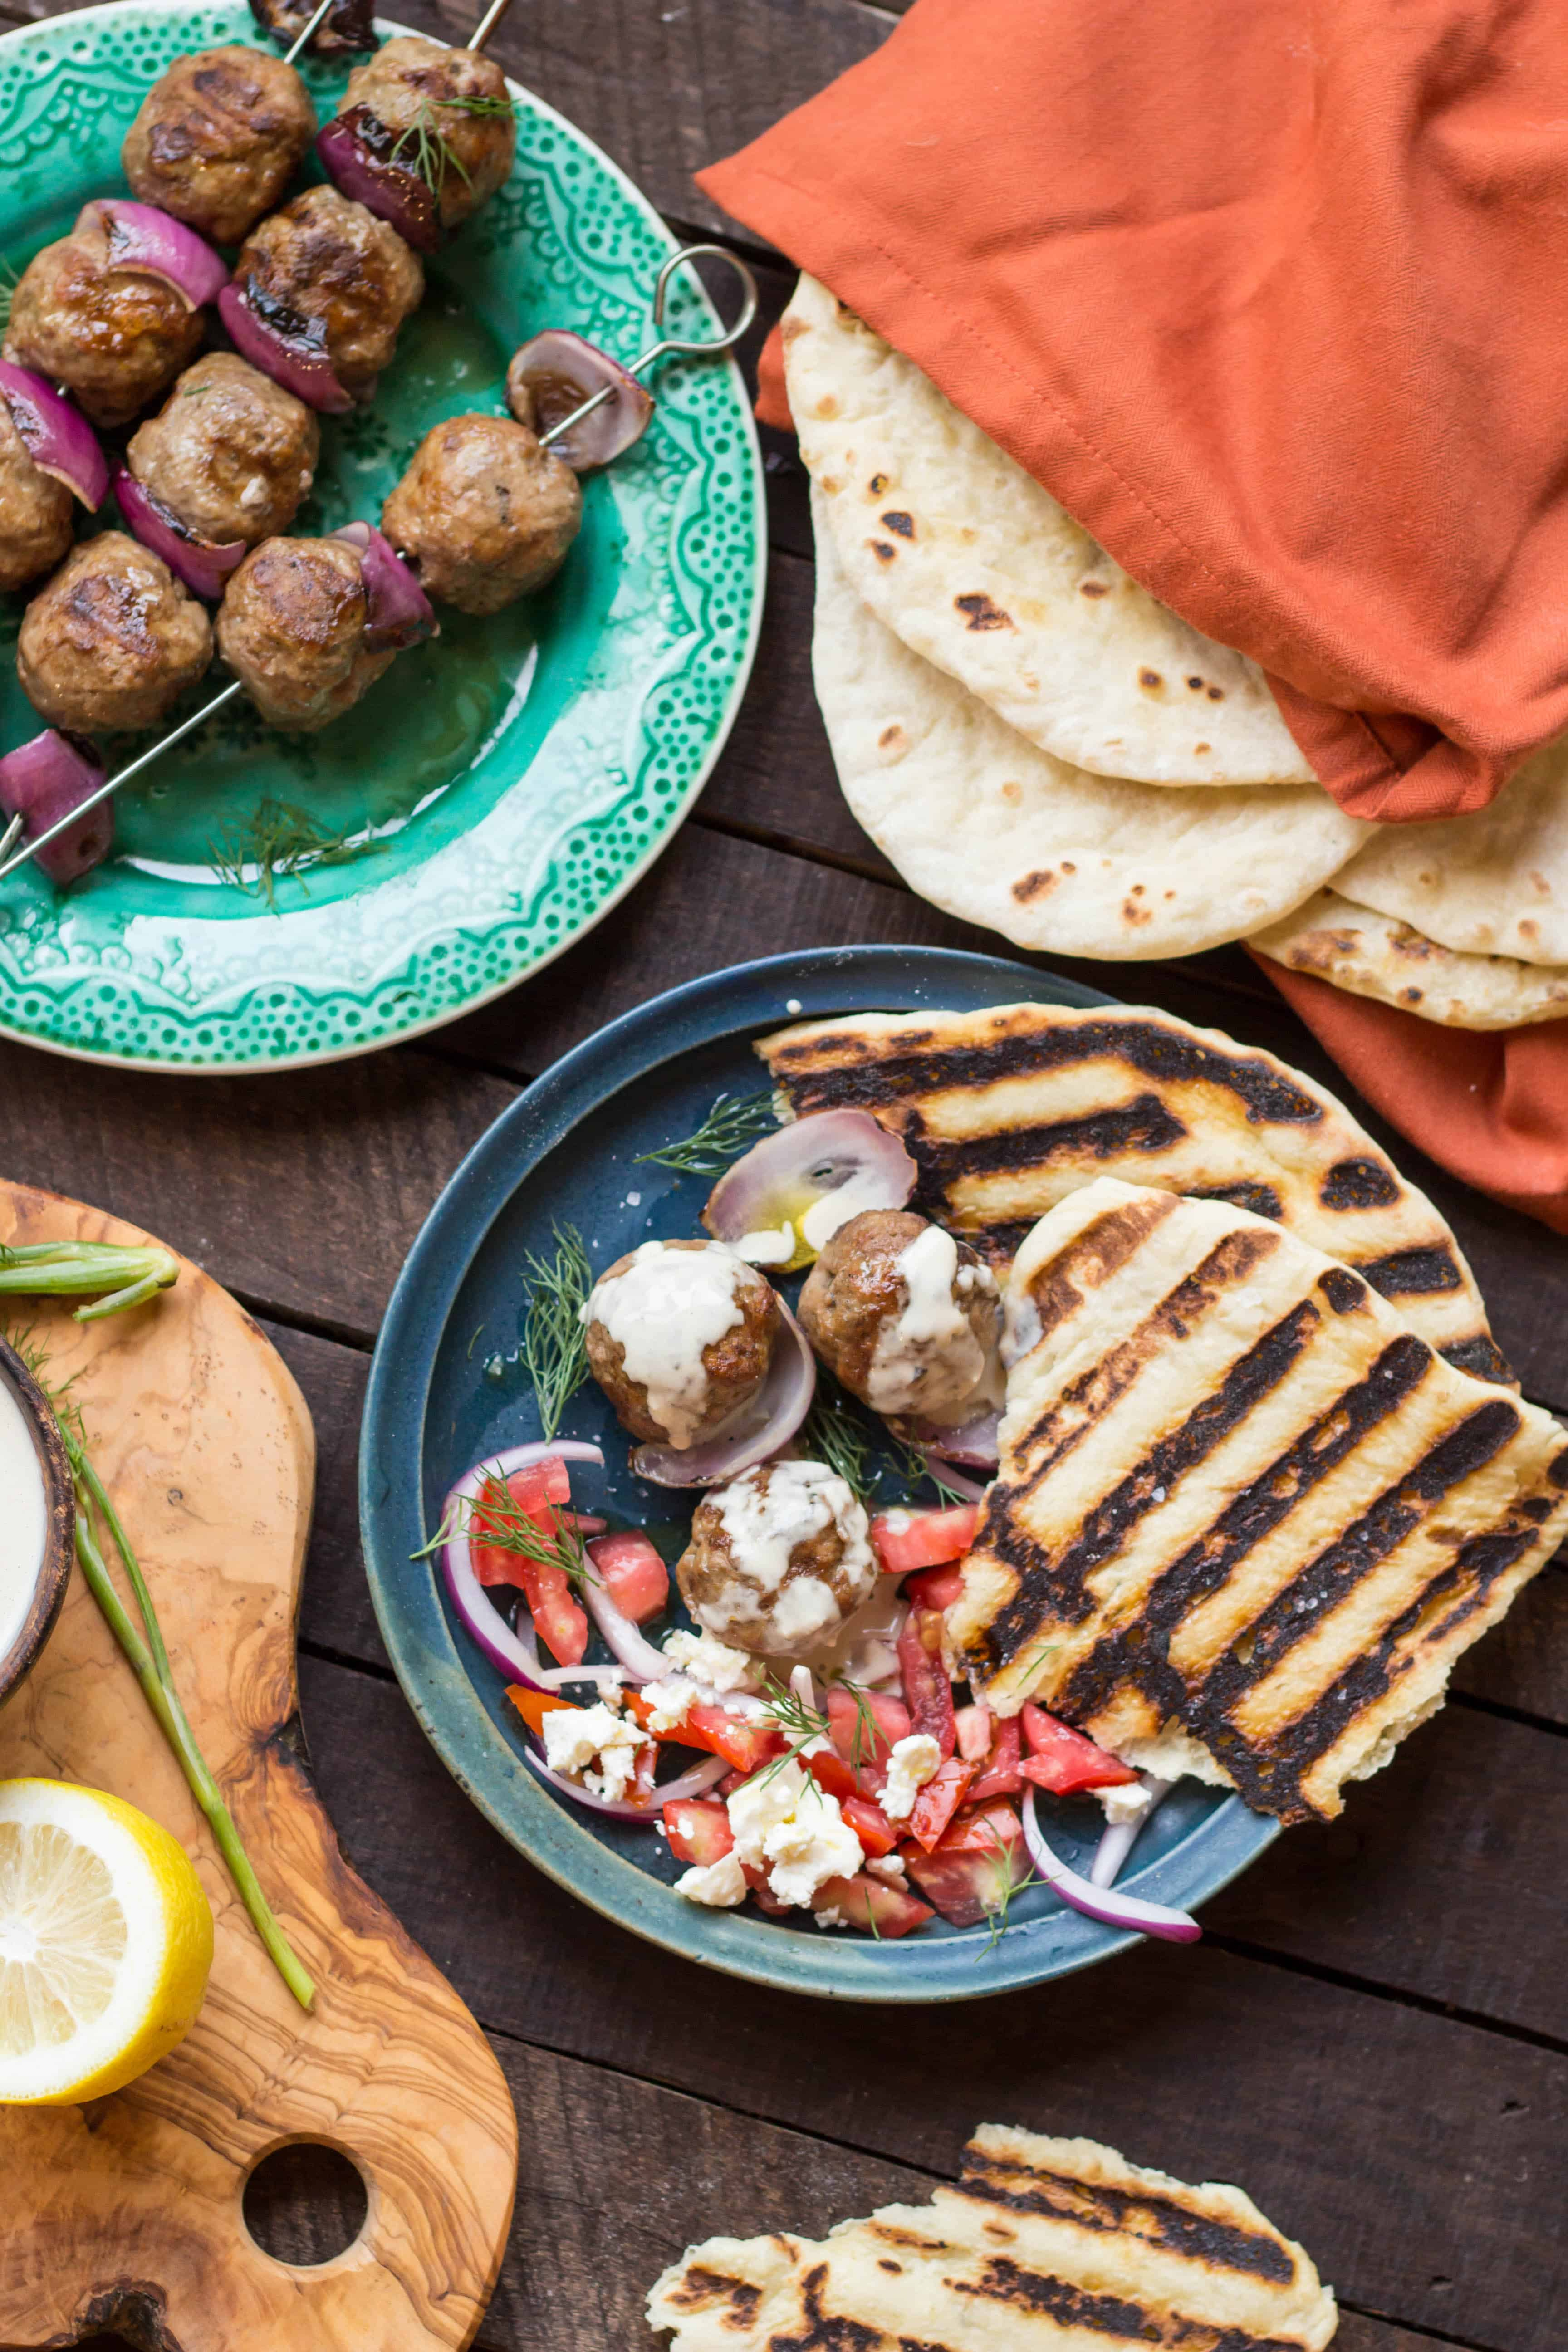 Grilled Lamb Meatballs with Tahini Sauce